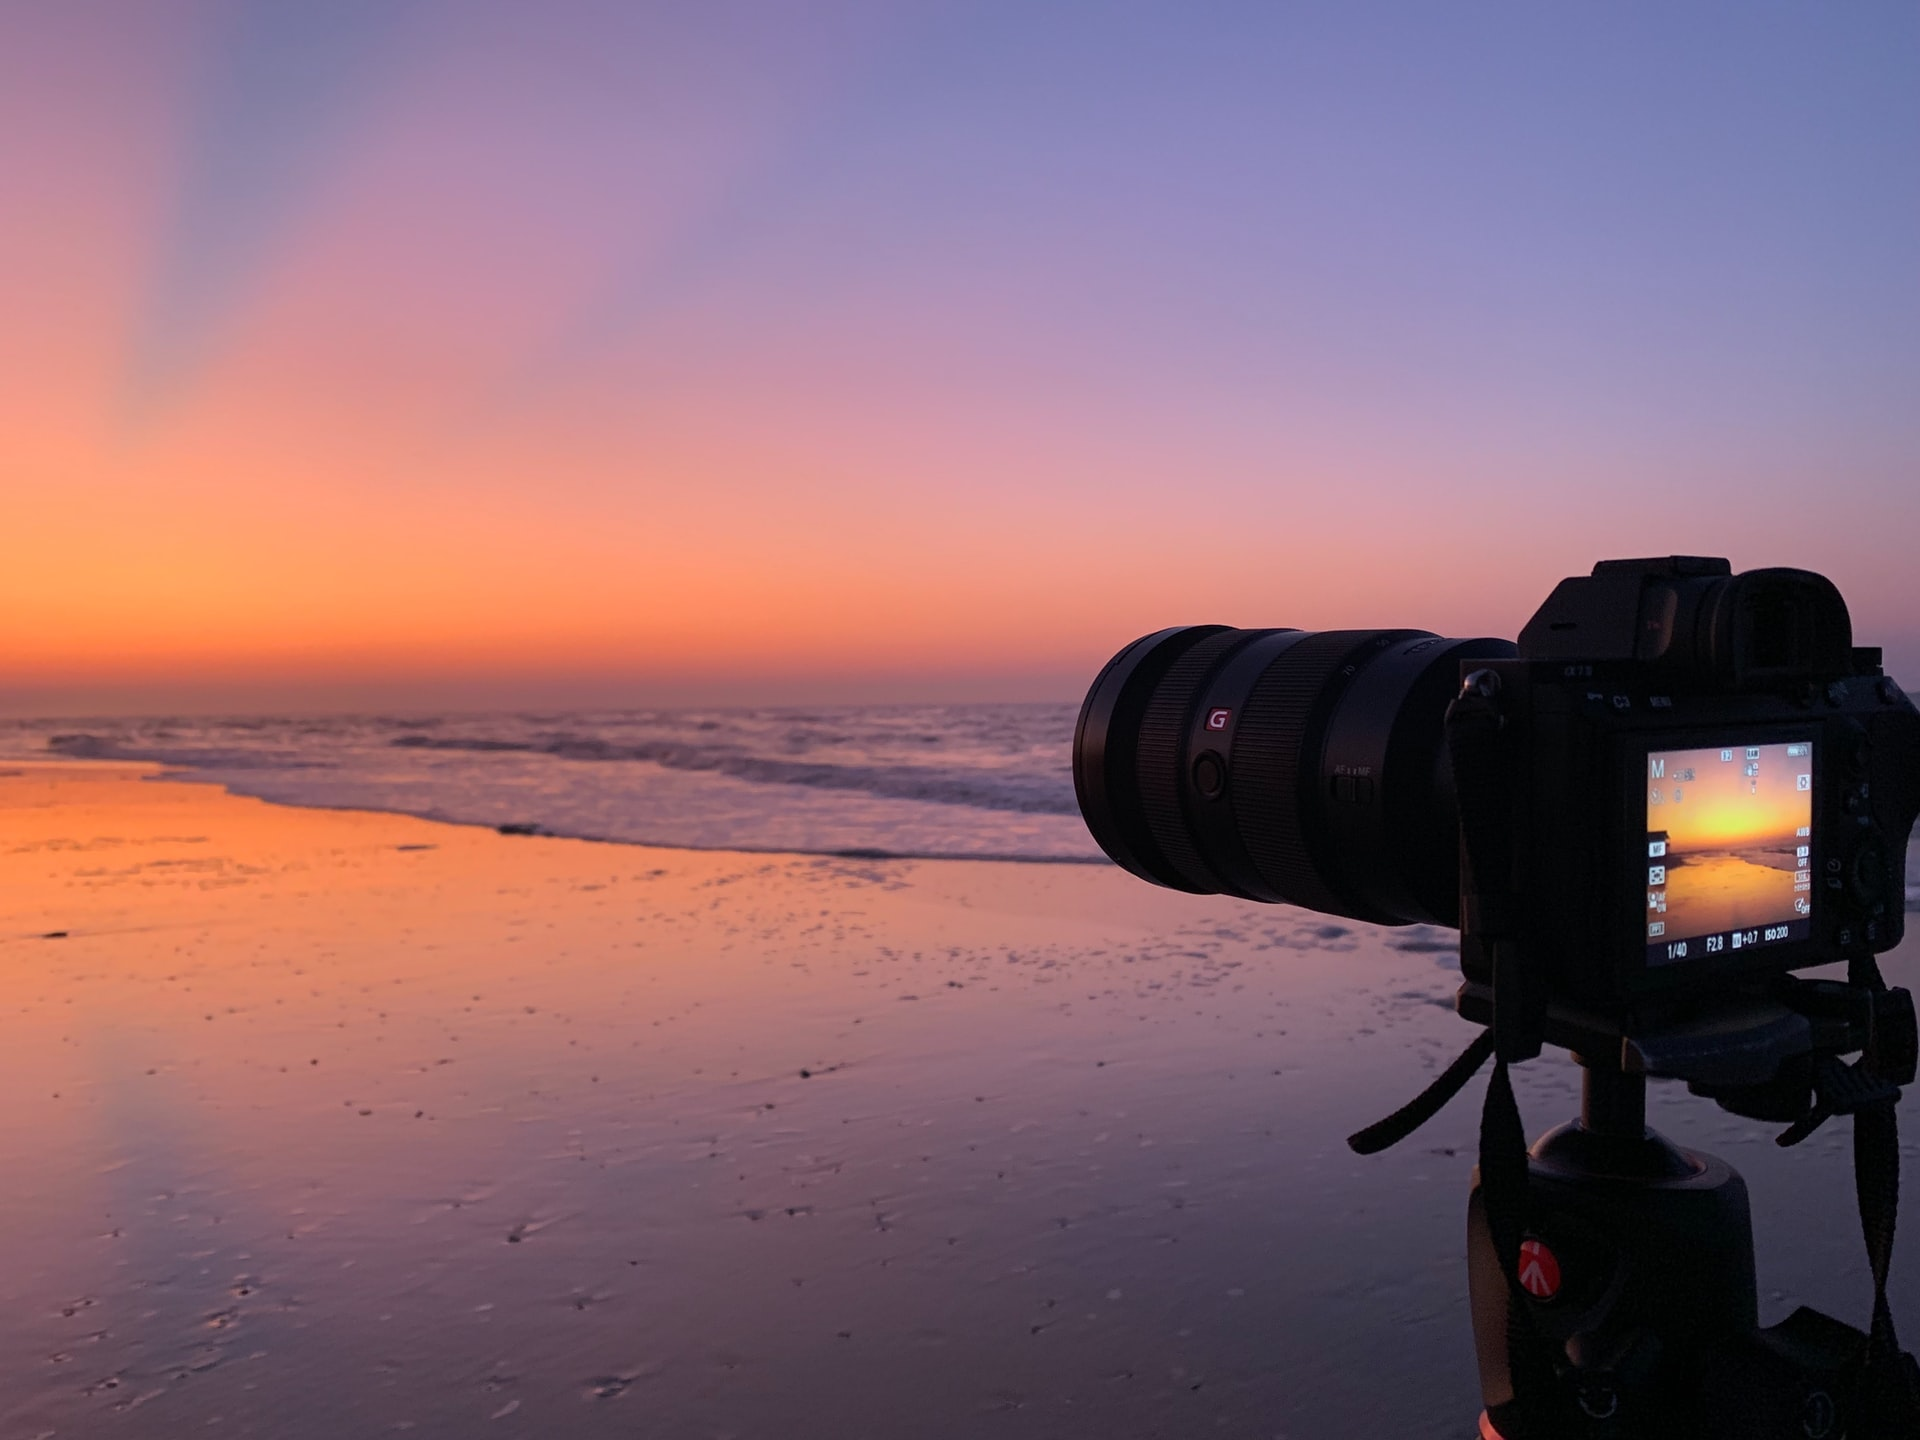 The Sony a7 III Is the Best Sony Camera in 2020 image